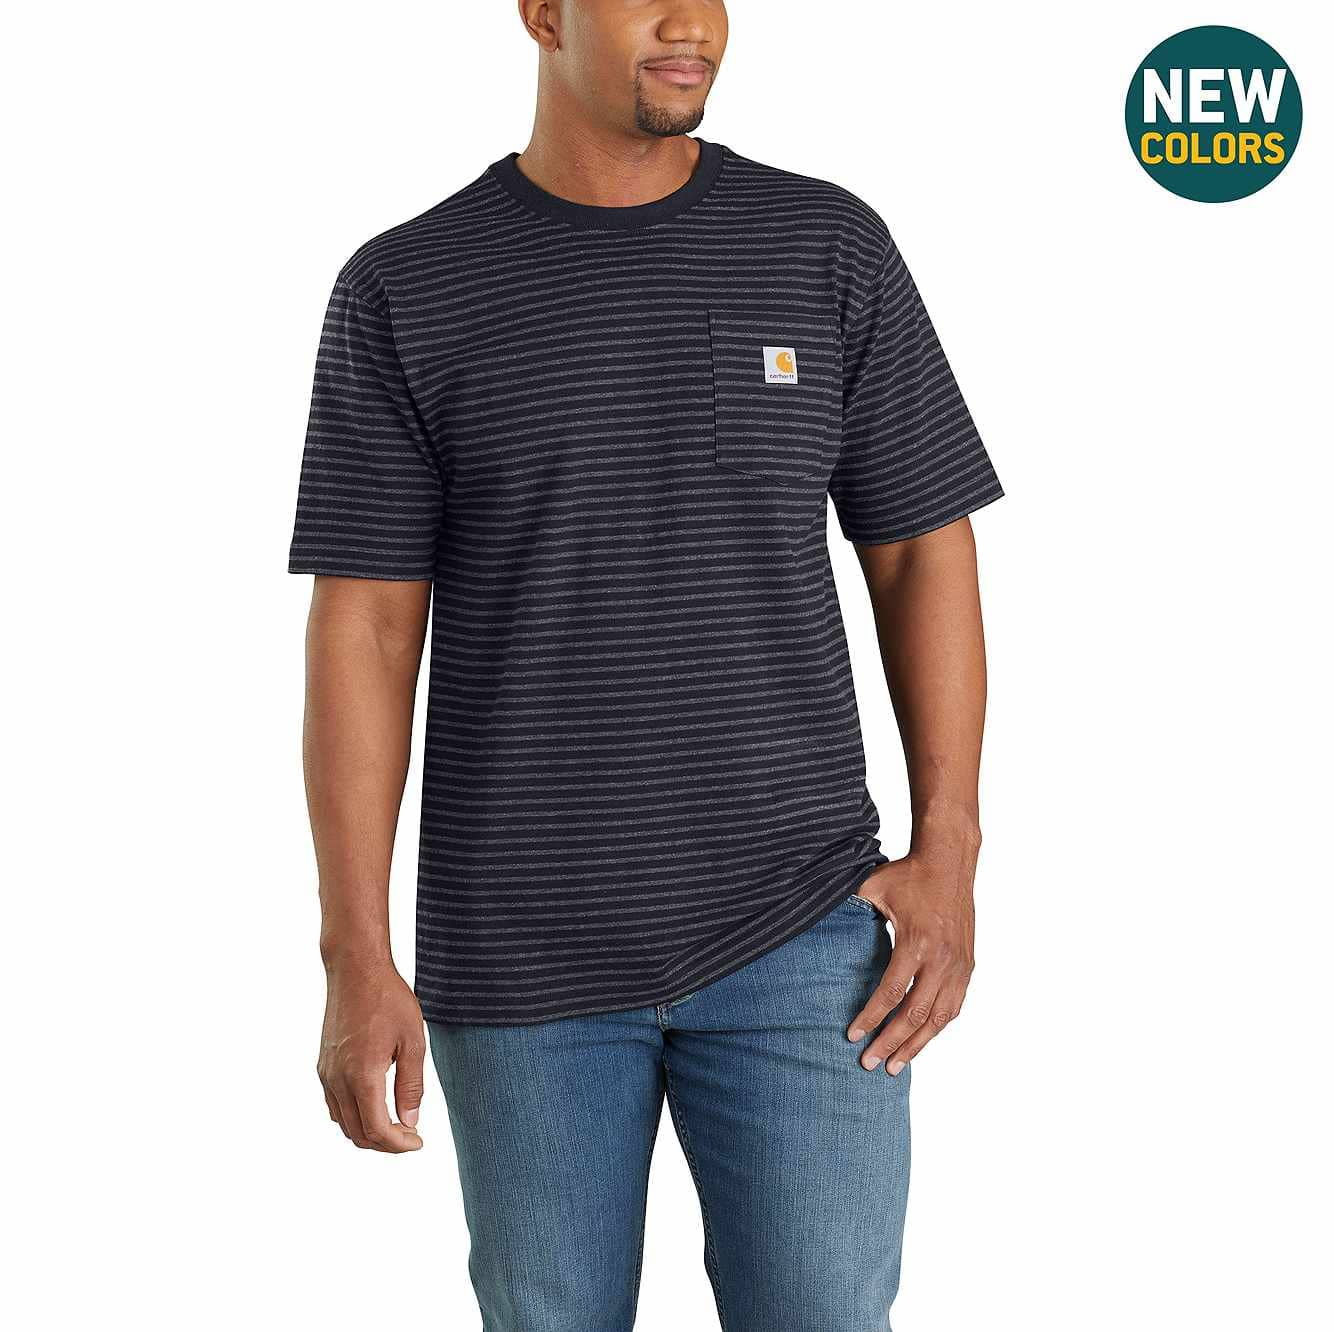 Picture of Loose Fit Heavyweight Short-Sleeve Pocket T-Shirt in Black Stripe